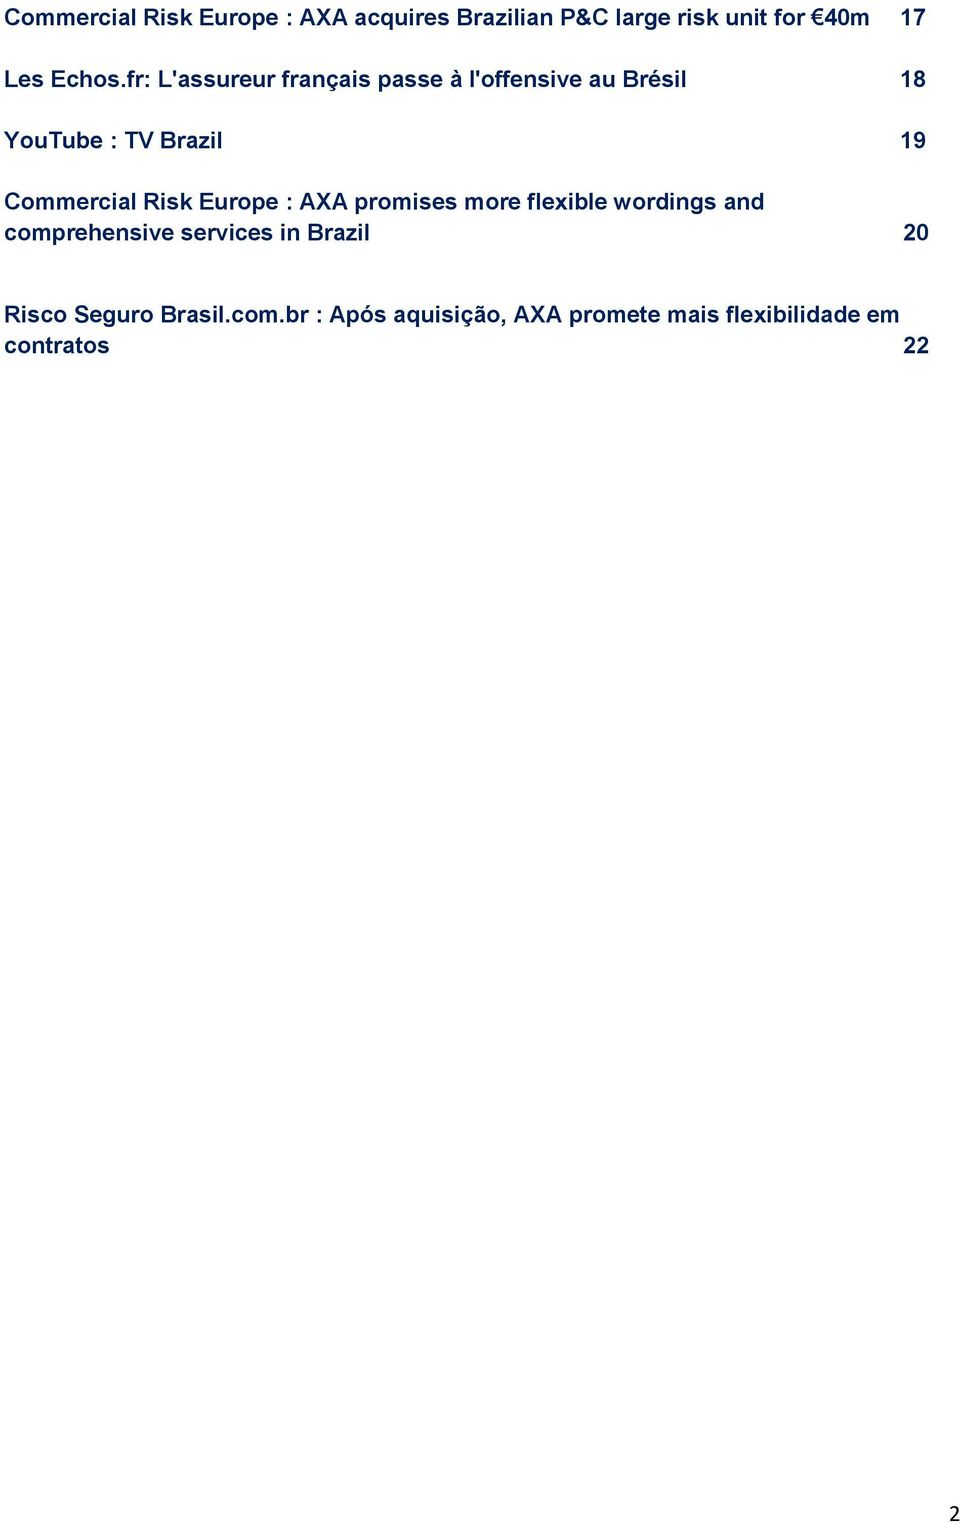 Risk Europe : AXA promises more flexible wordings and comprehensive services in Brazil 20